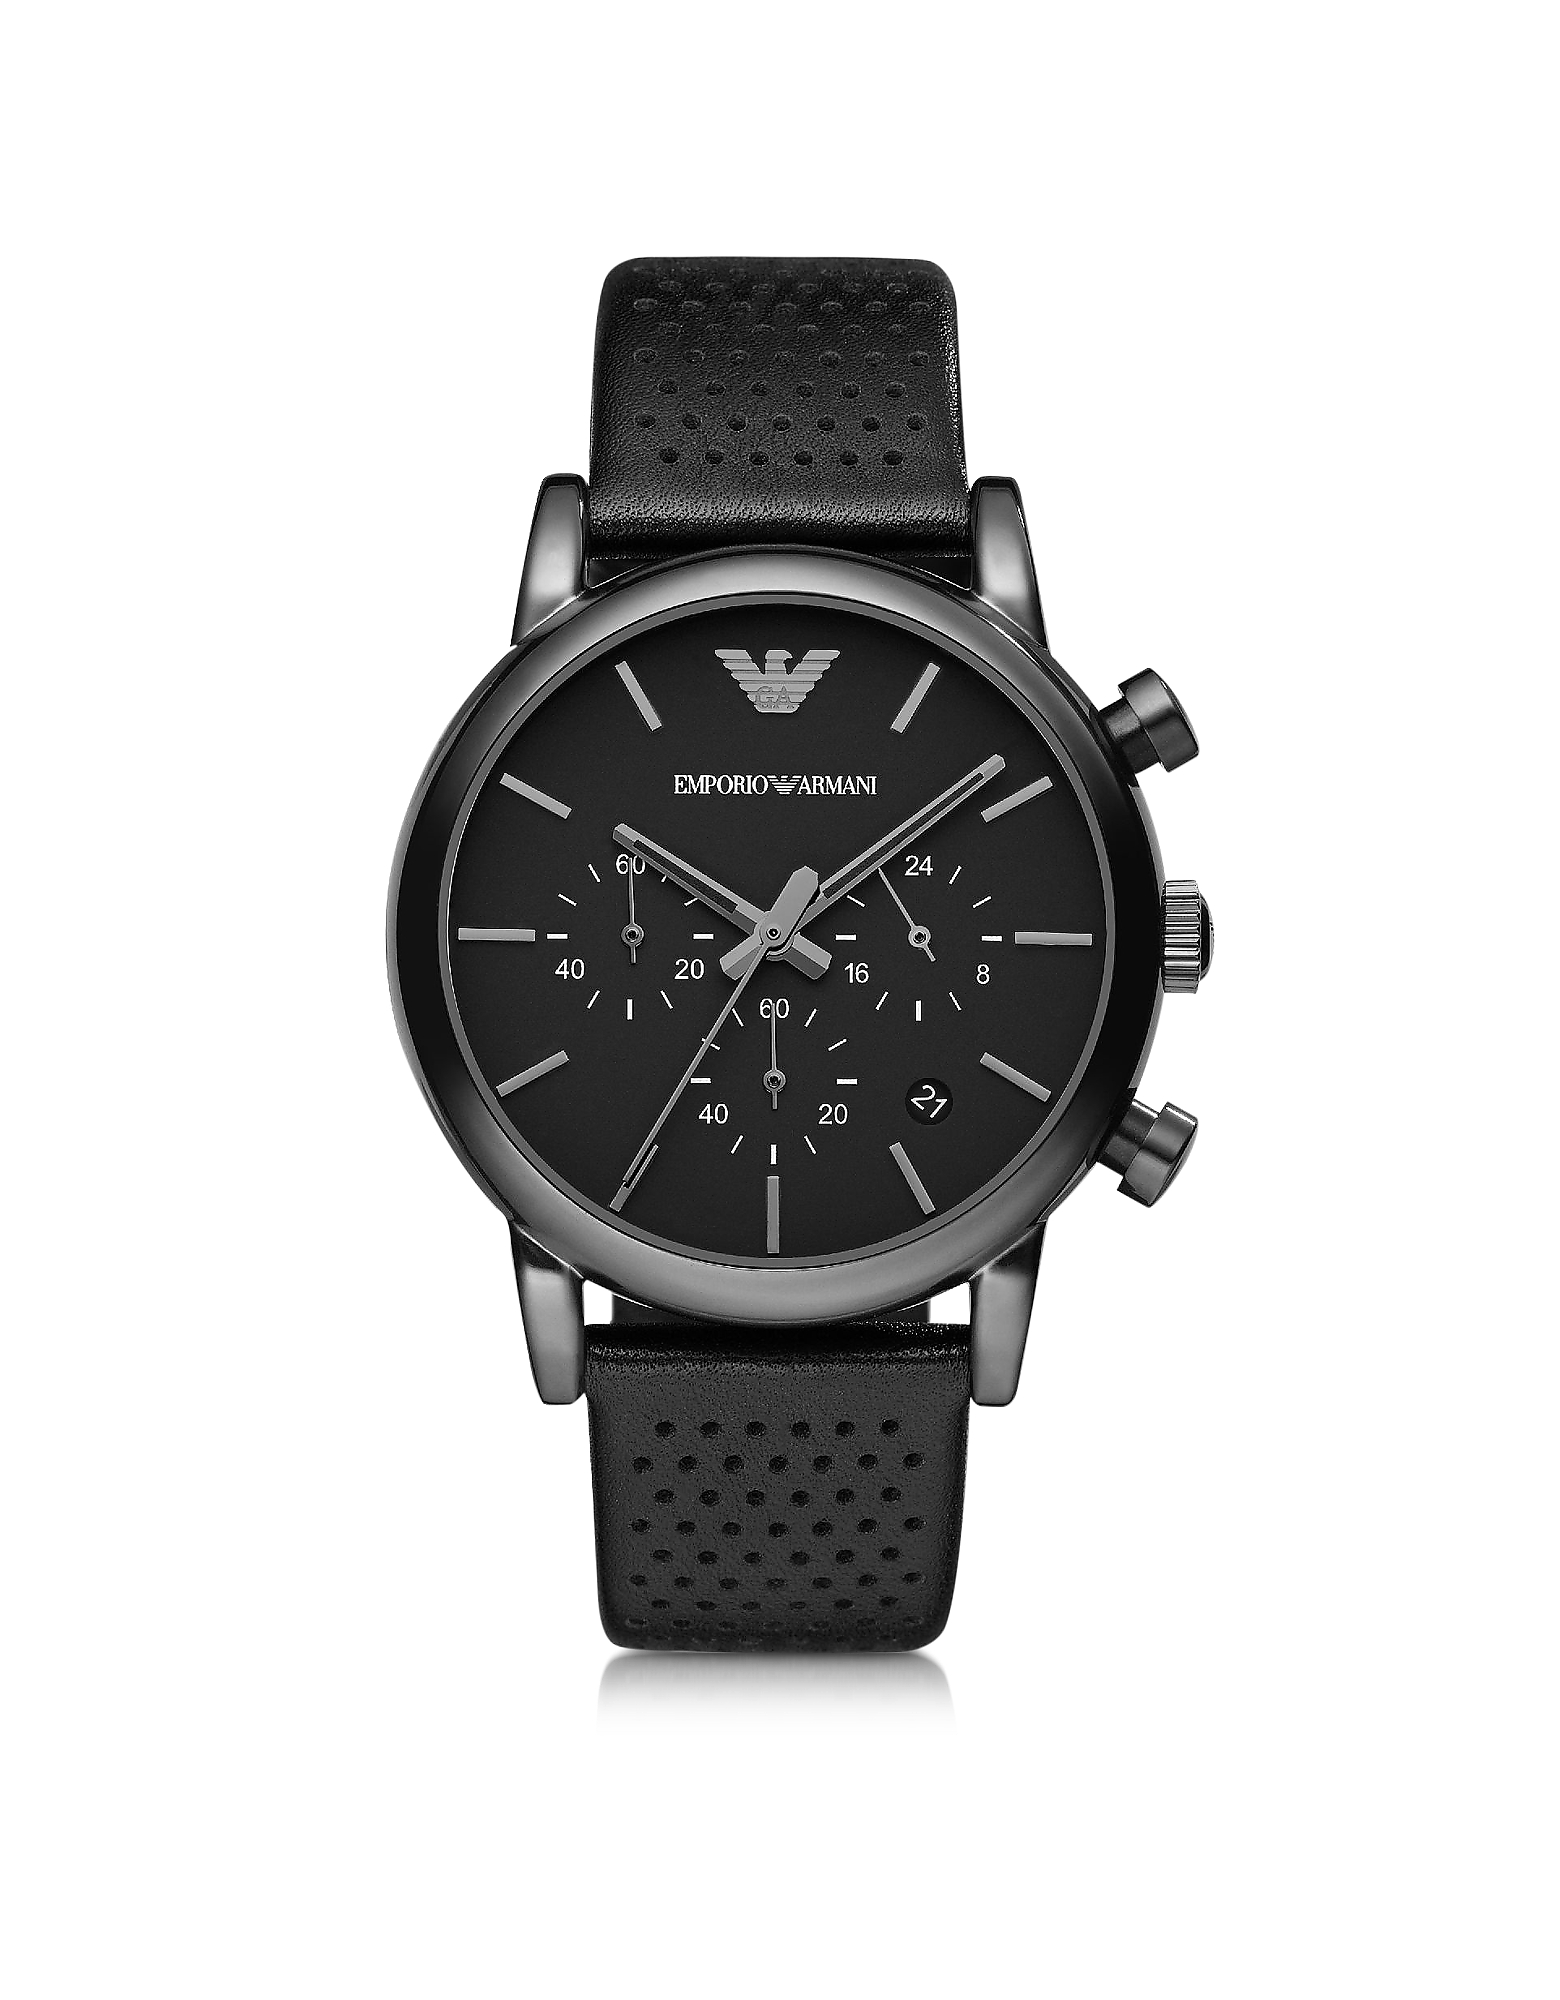 Emporio Armani Men's Watches, Black Stainless Steel & Leather Men's Watch